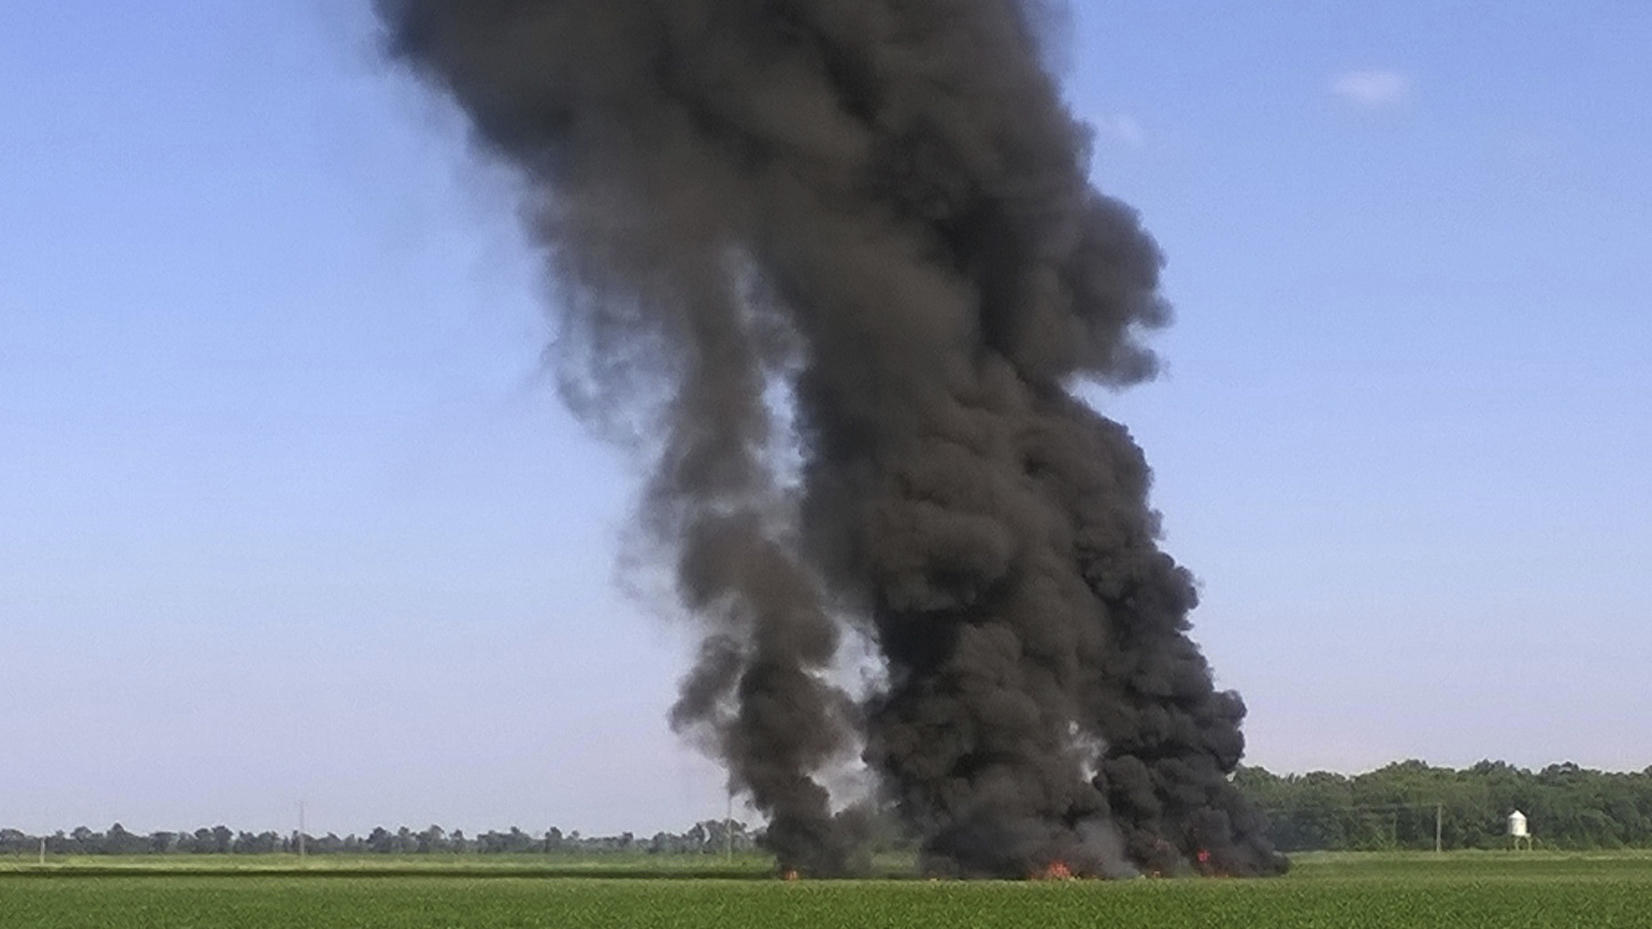 Coroner: 6 people confirmed dead after Military plane crashes in Sunflower County